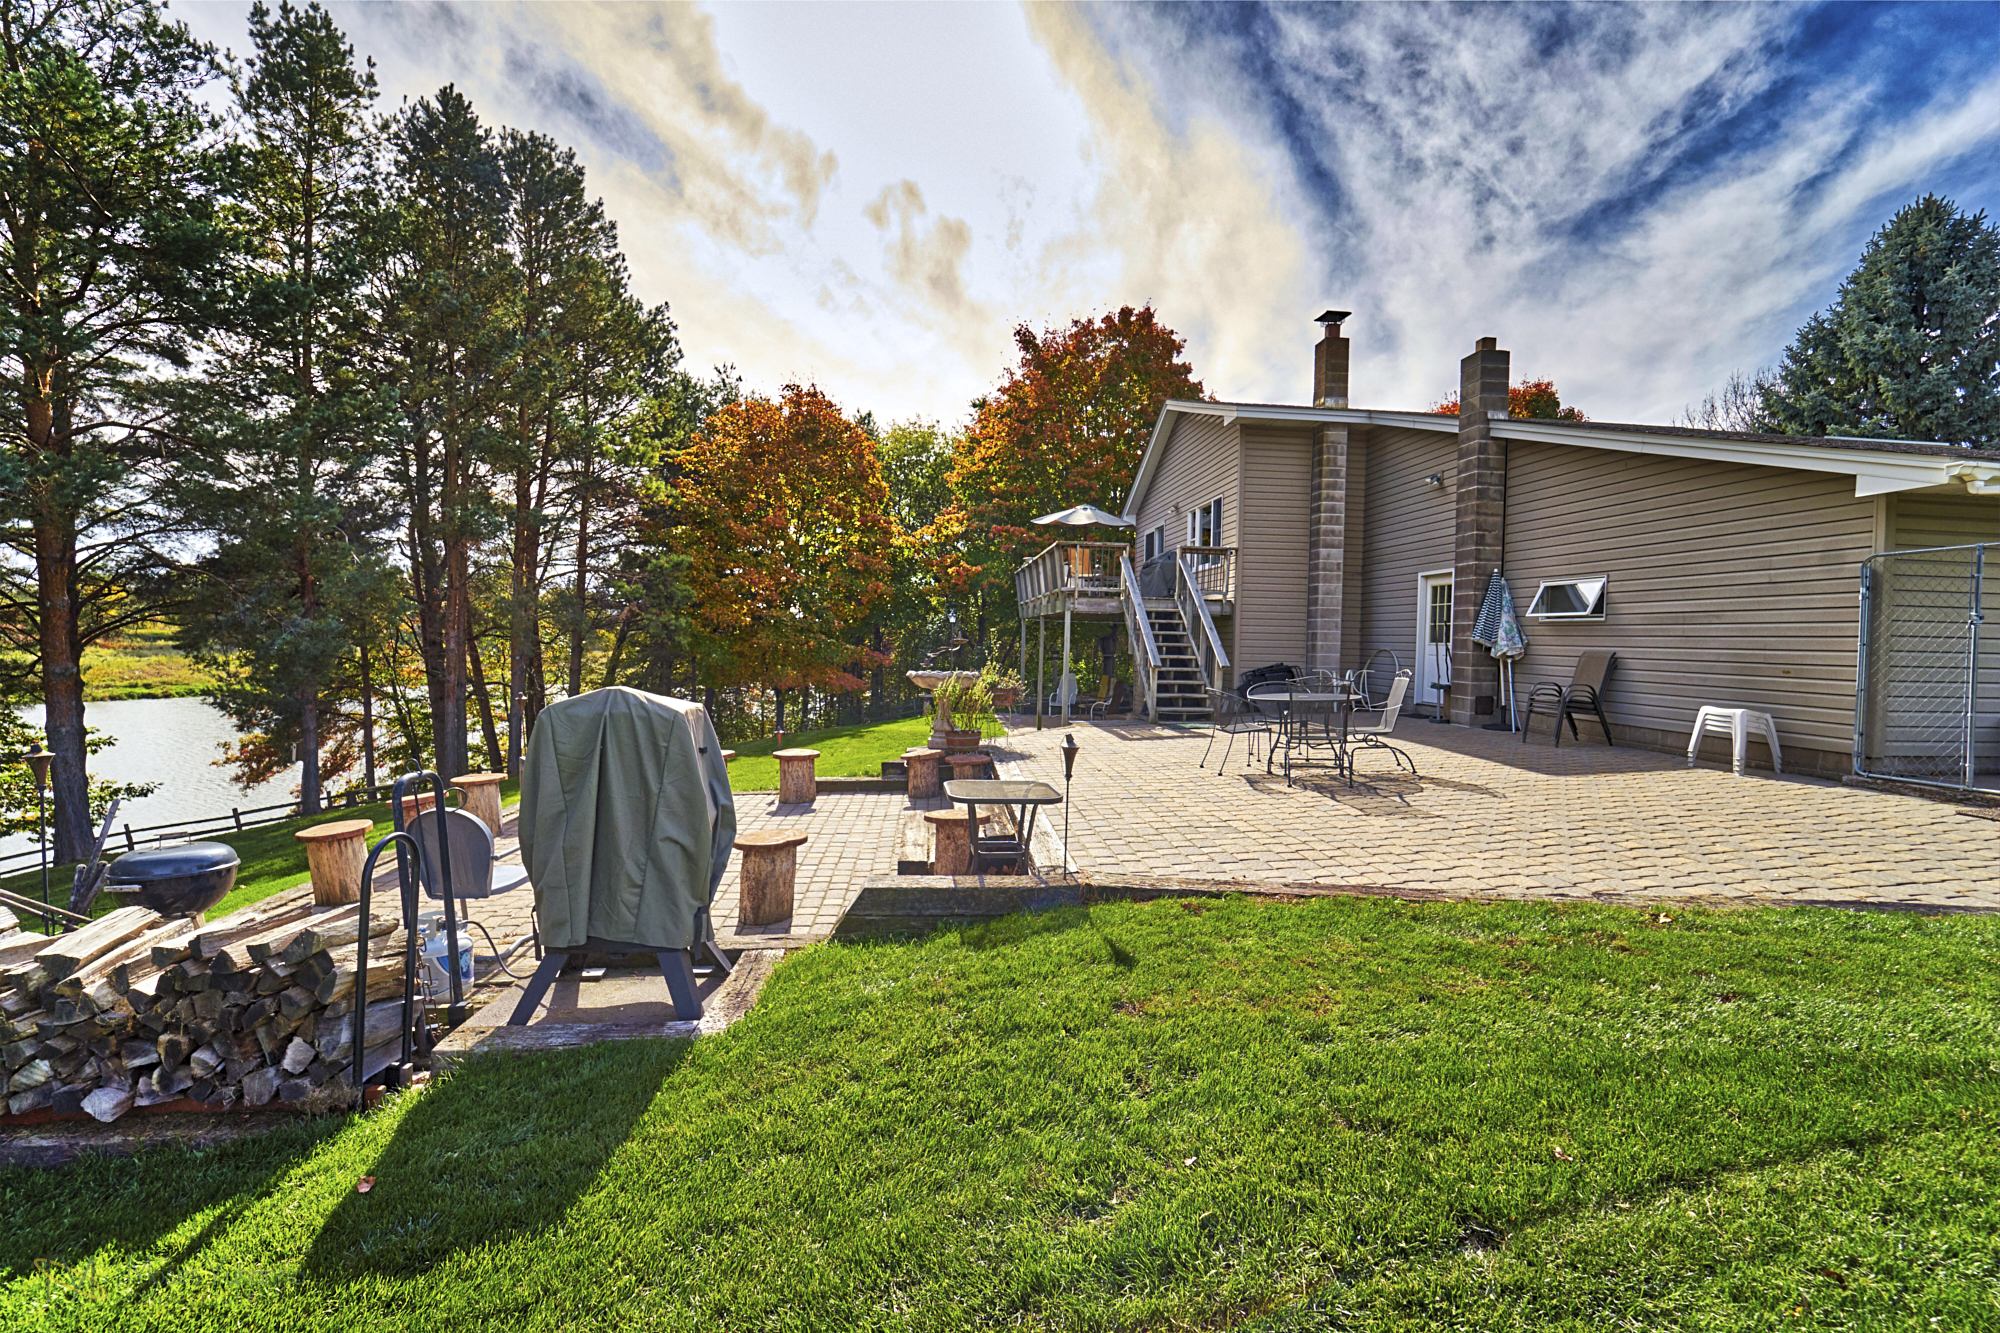 28431-jeffery-avenue-chisago-city-mn-backyard2.jpg